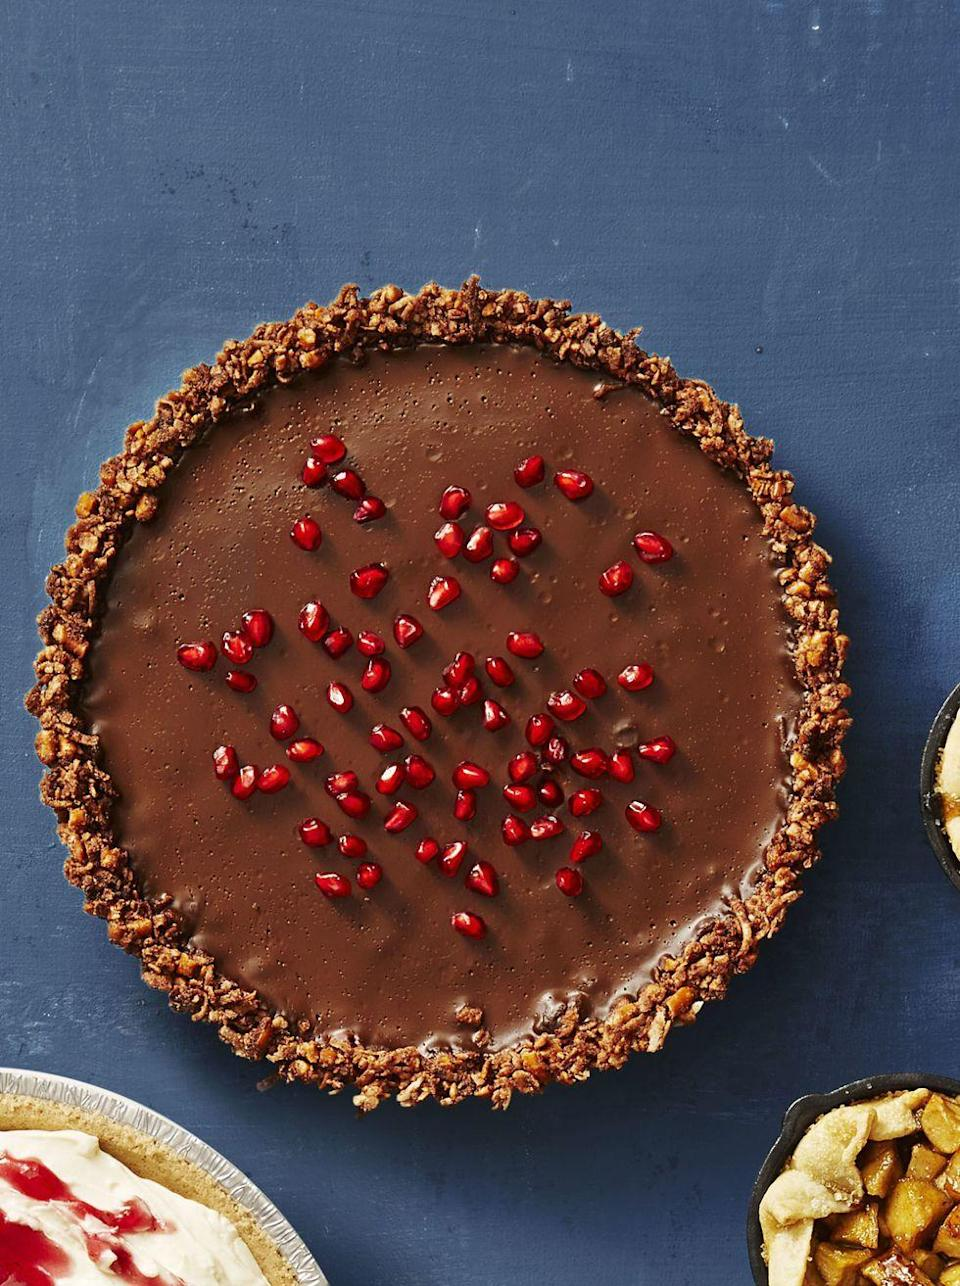 "<p>The salty pretzel crust (that just so happens to be gluten-free!) adds great crunch to contrast the silky chocolate ganache.</p><p><em><a href=""https://www.goodhousekeeping.com/food-recipes/a41082/gluten-free-chocolate-ganache-tart-recipe/"" rel=""nofollow noopener"" target=""_blank"" data-ylk=""slk:Get the recipe for Gluten-Free Chocolate Ganache Tart »"" class=""link rapid-noclick-resp"">Get the recipe for Gluten-Free Chocolate Ganache Tart »</a></em></p>"